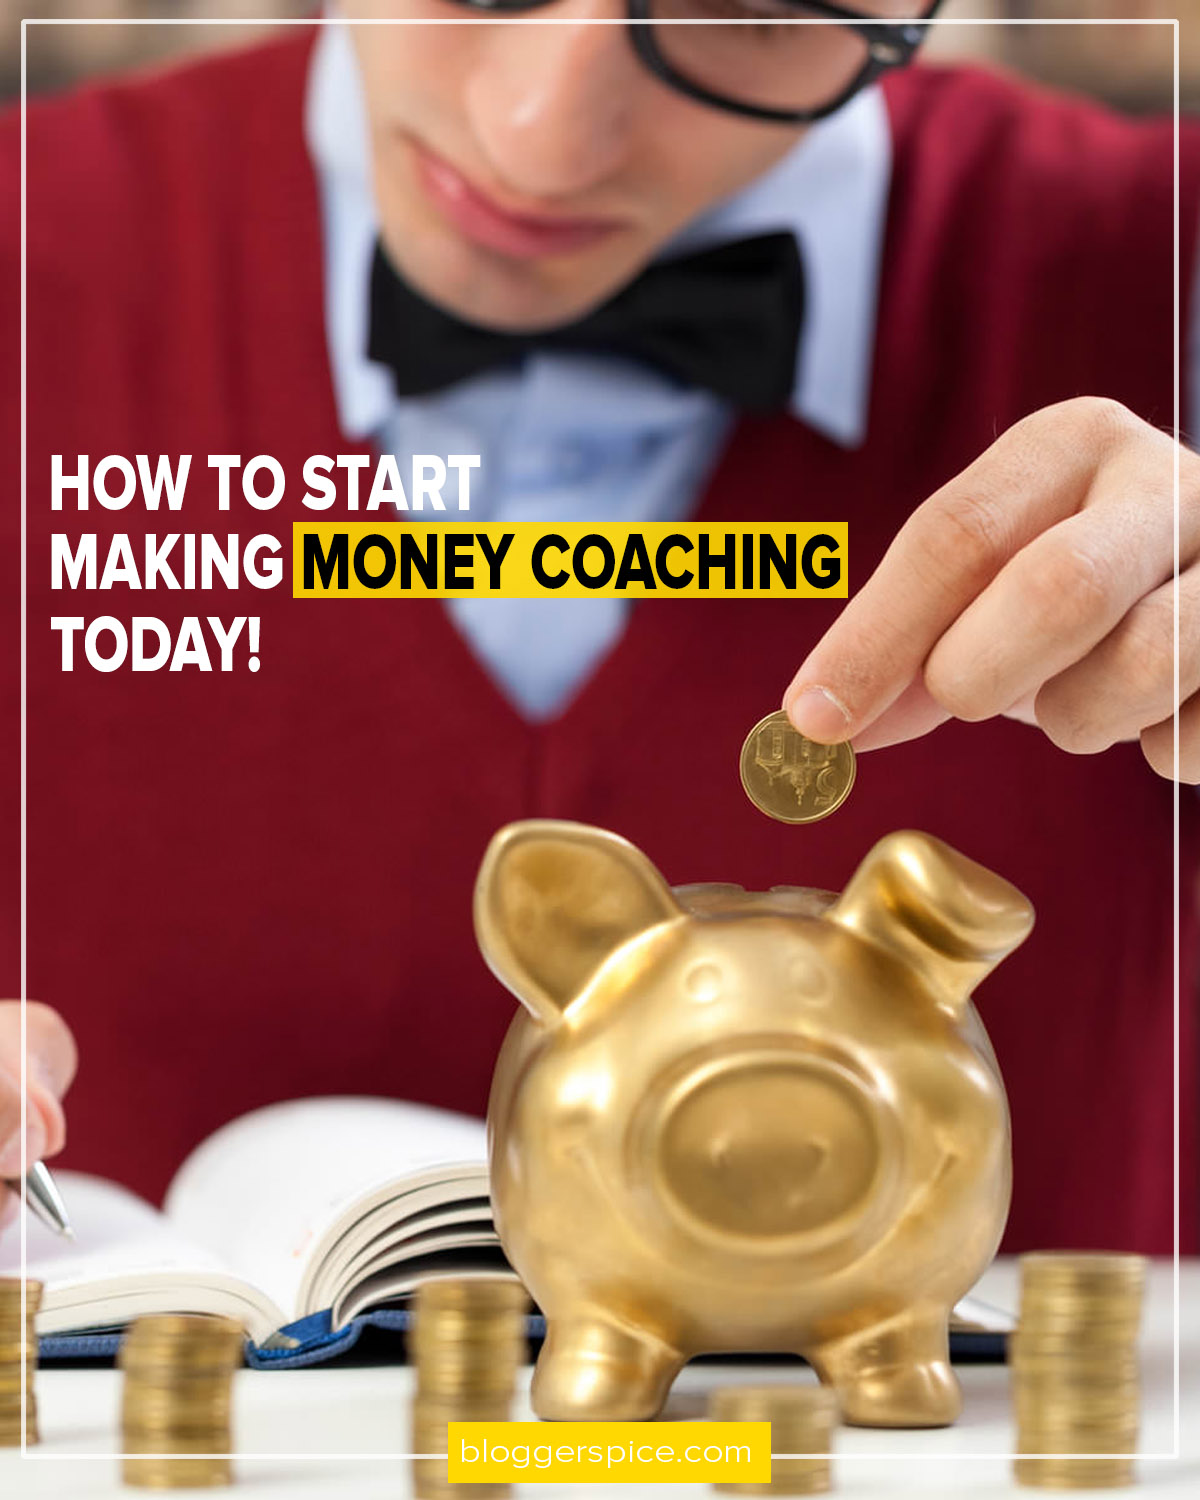 How to Make Money as an Online Coach